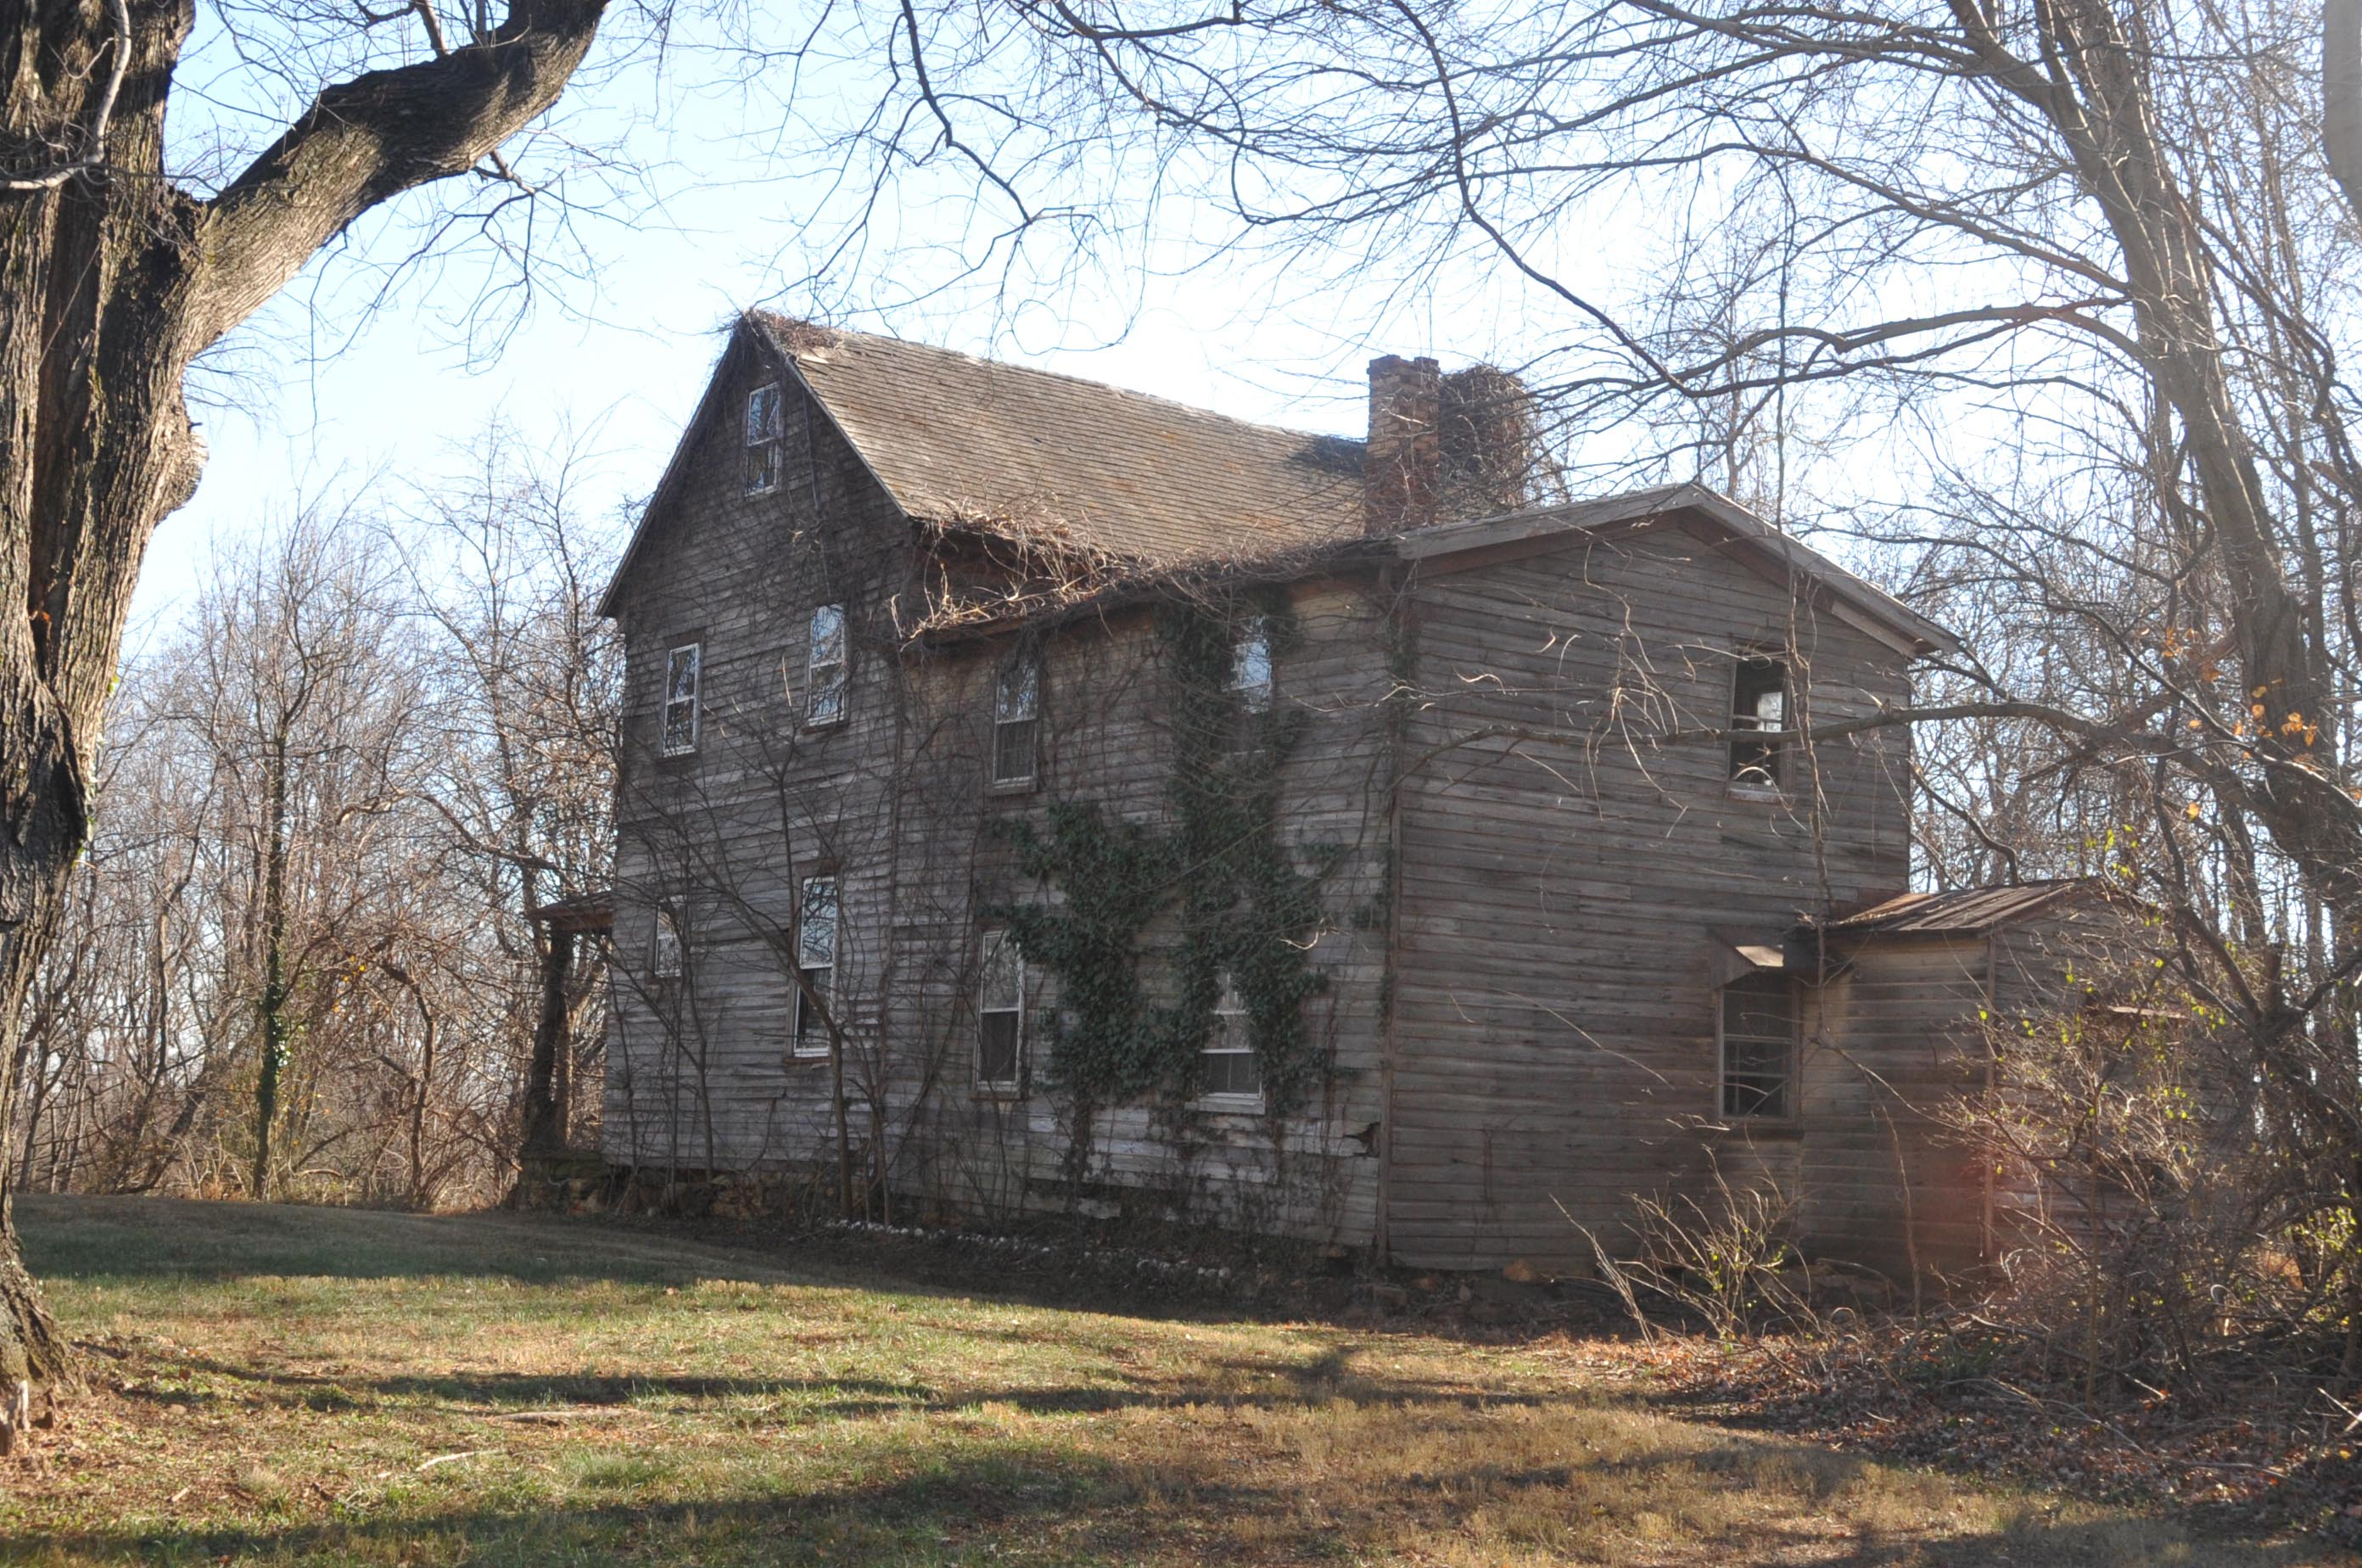 A view of the home in 2007 ((By Jerrye & Roy Klotz, MD (Own work) [CC BY-SA 3.0 (http://creativecommons.org/licenses/by-sa/3.0)], via Wikimedia Commons))